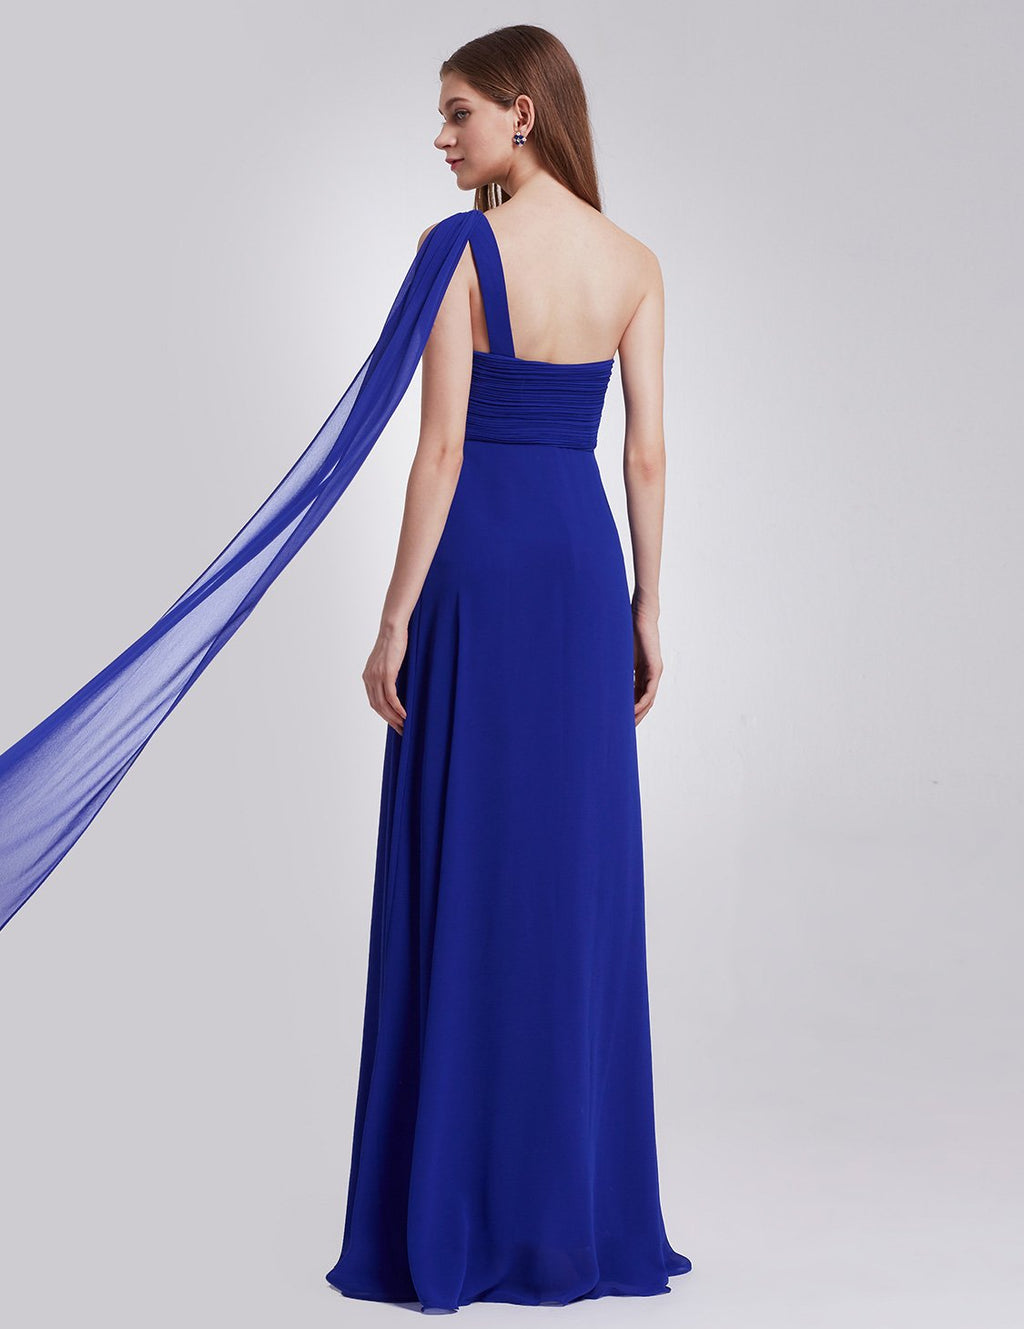 One Shoulder Simple Long Party Dress Sapphire Blue